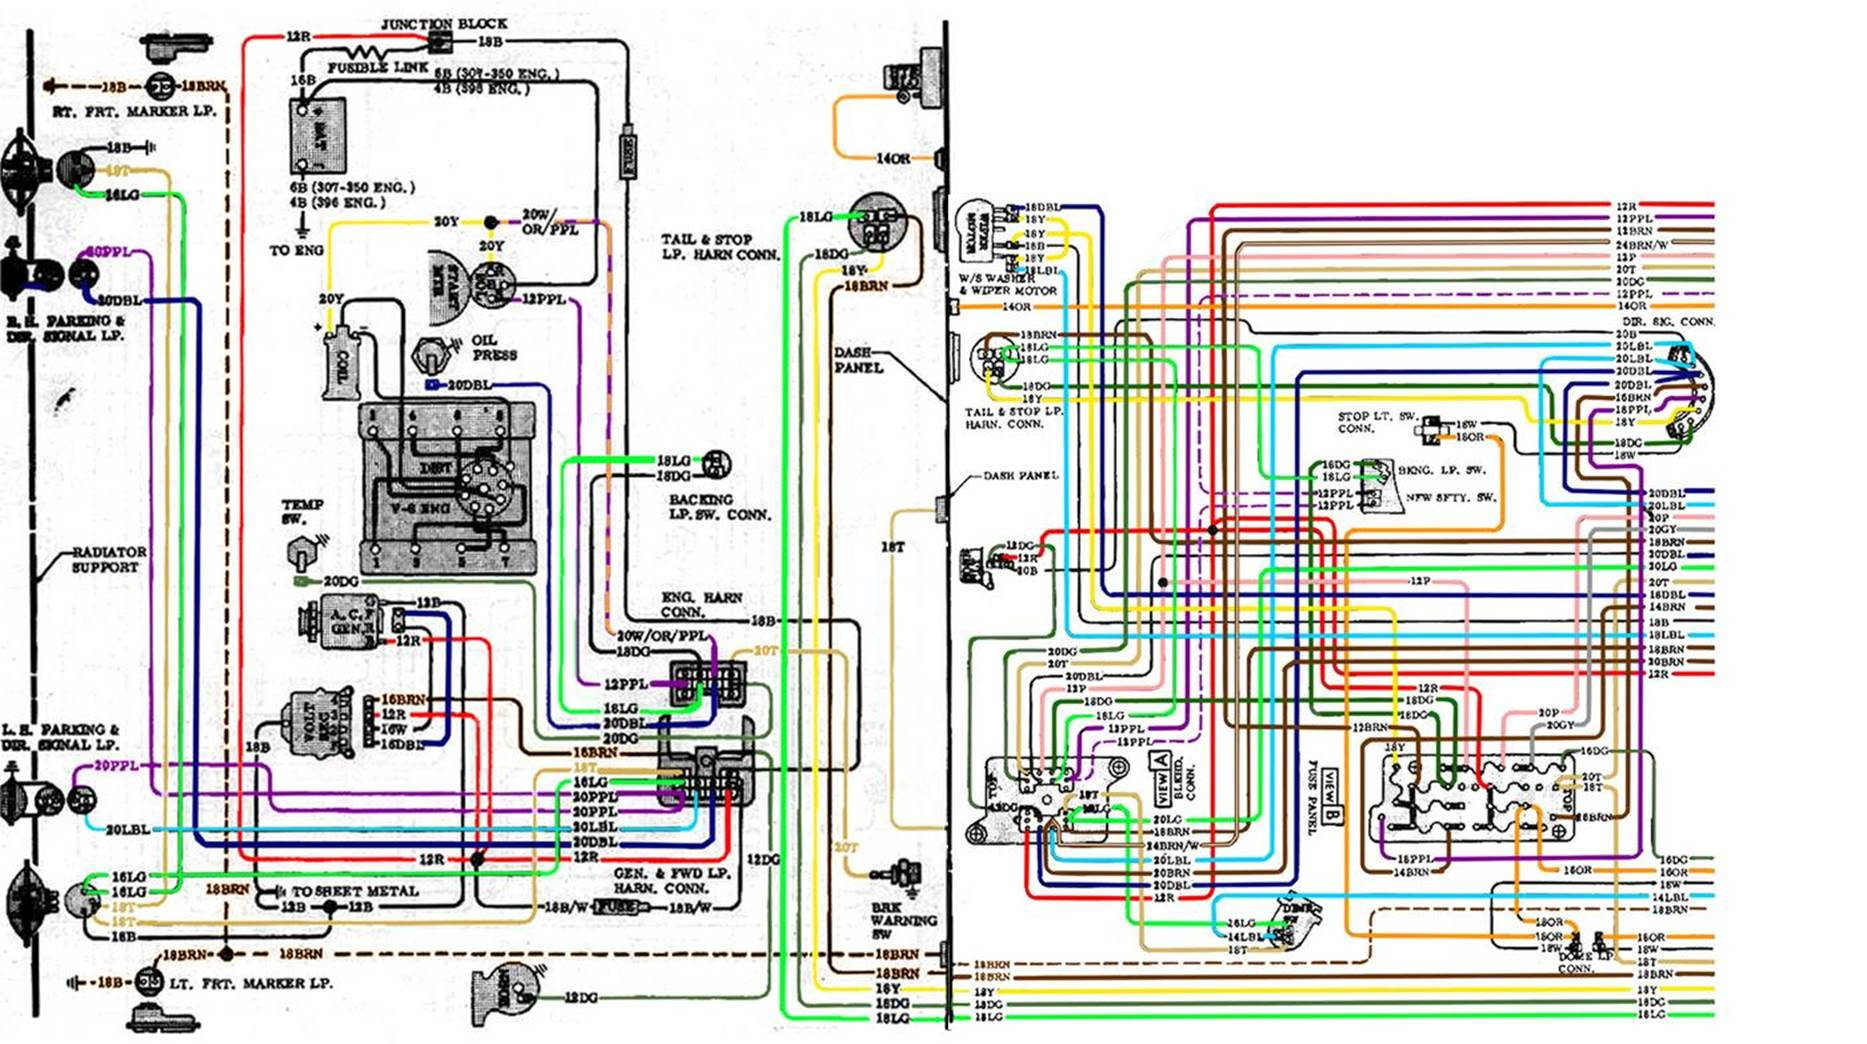 image002 67 72 chevy wiring diagram chevrolet wiring diagram at mifinder.co